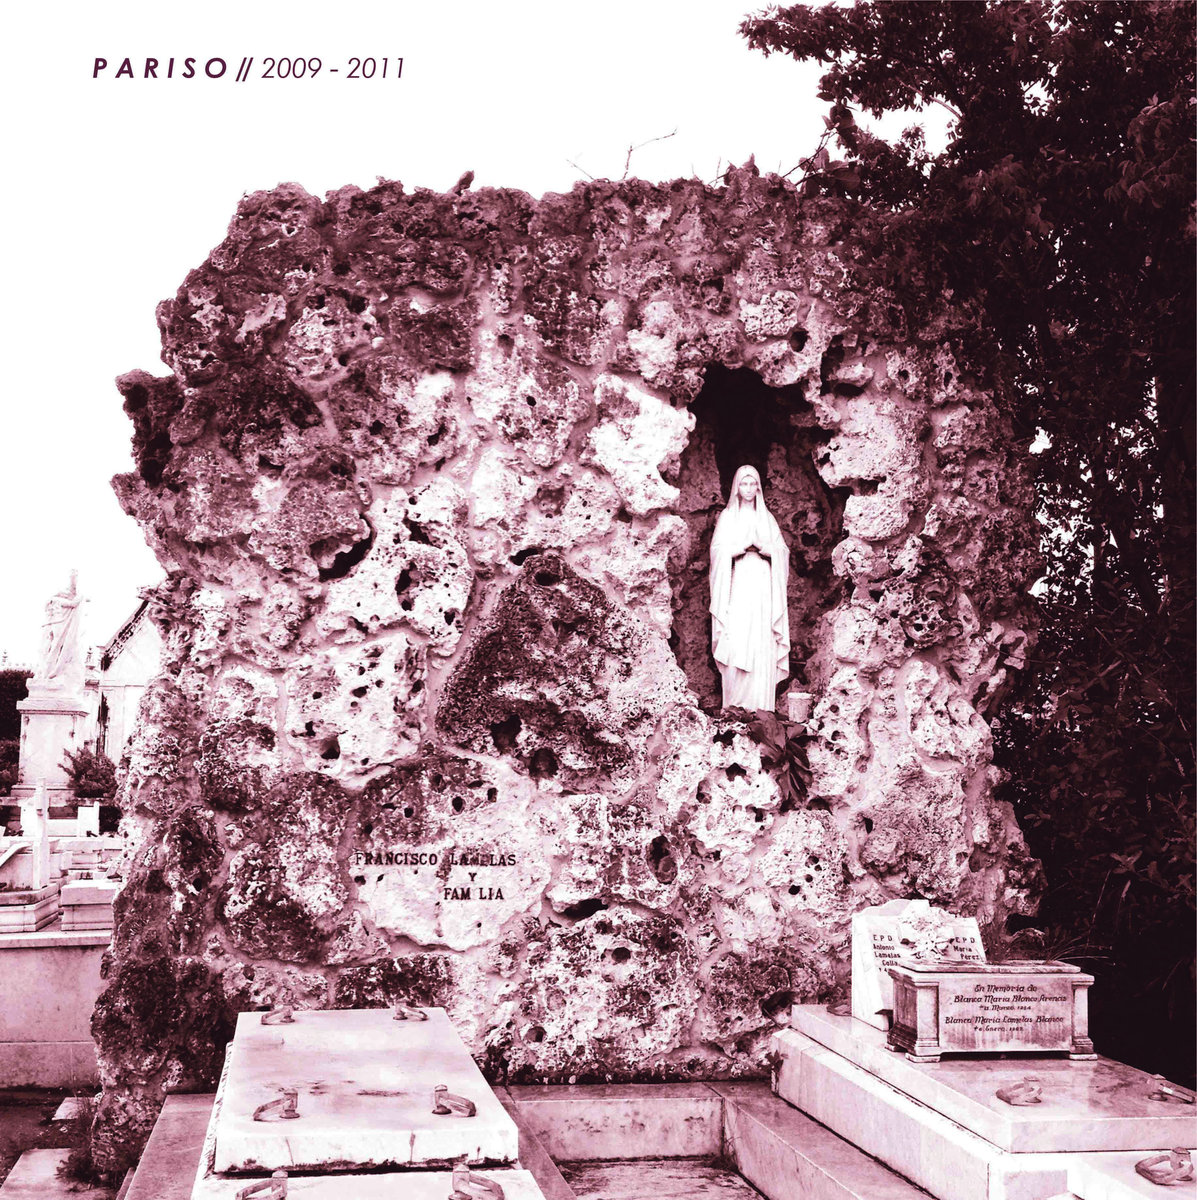 Pariso - 2009 - 2011 Discography